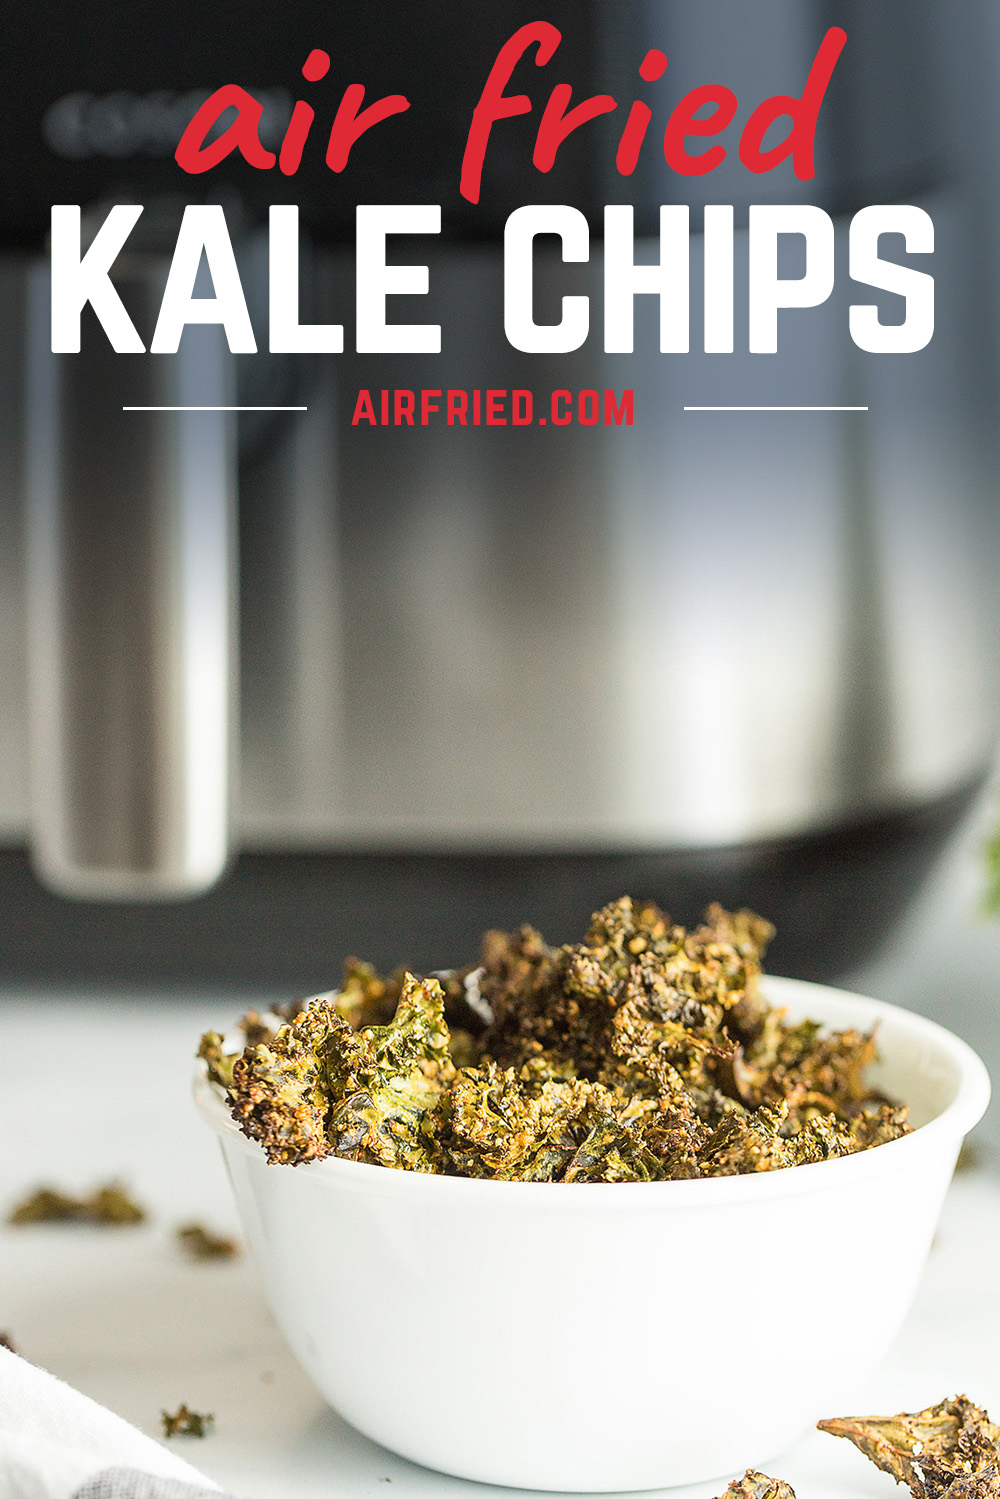 Kale chips are a great healthy snack!  #lowcarb #airfryer #snackrecipes